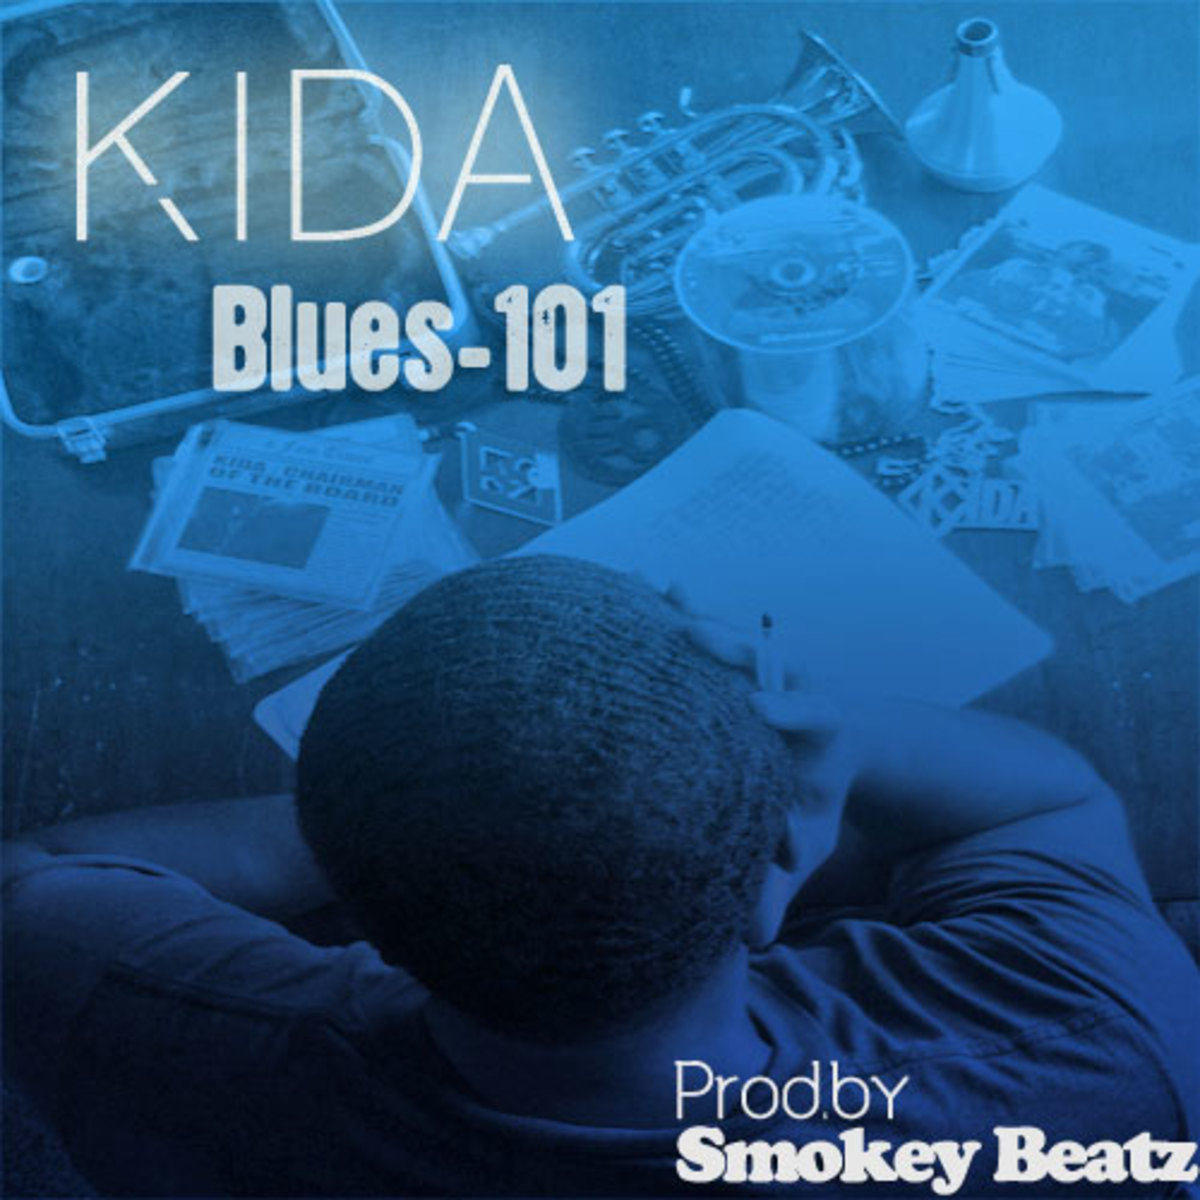 kida-blues101.jpg